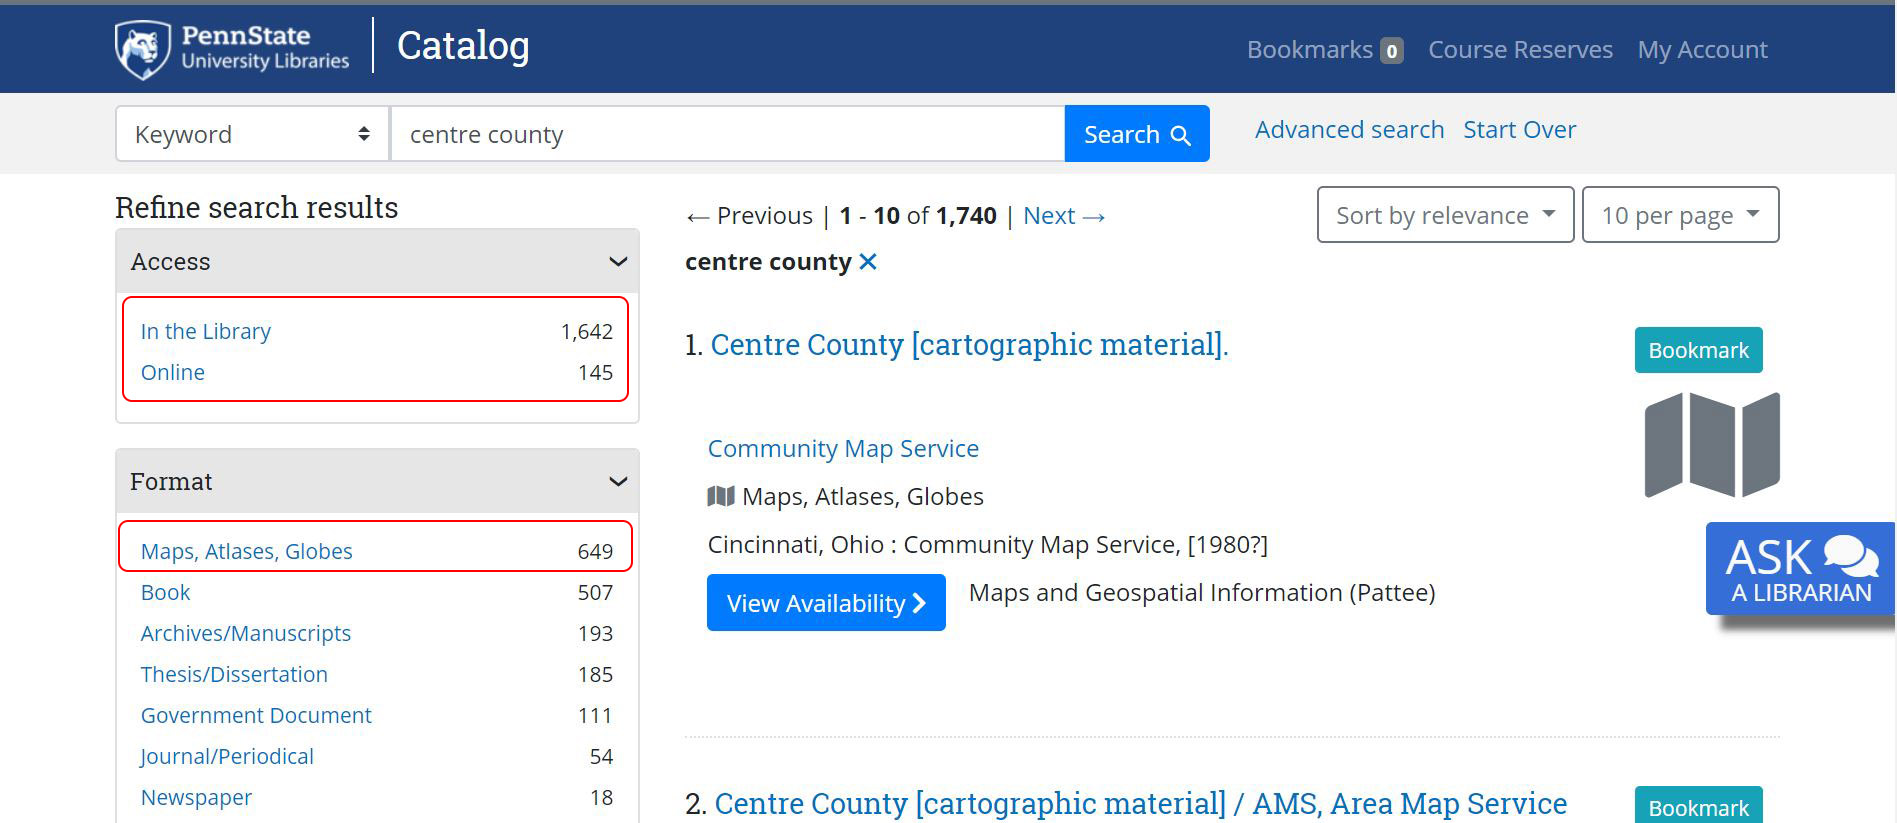 image showing catalog search for centre county and limiting by access and map